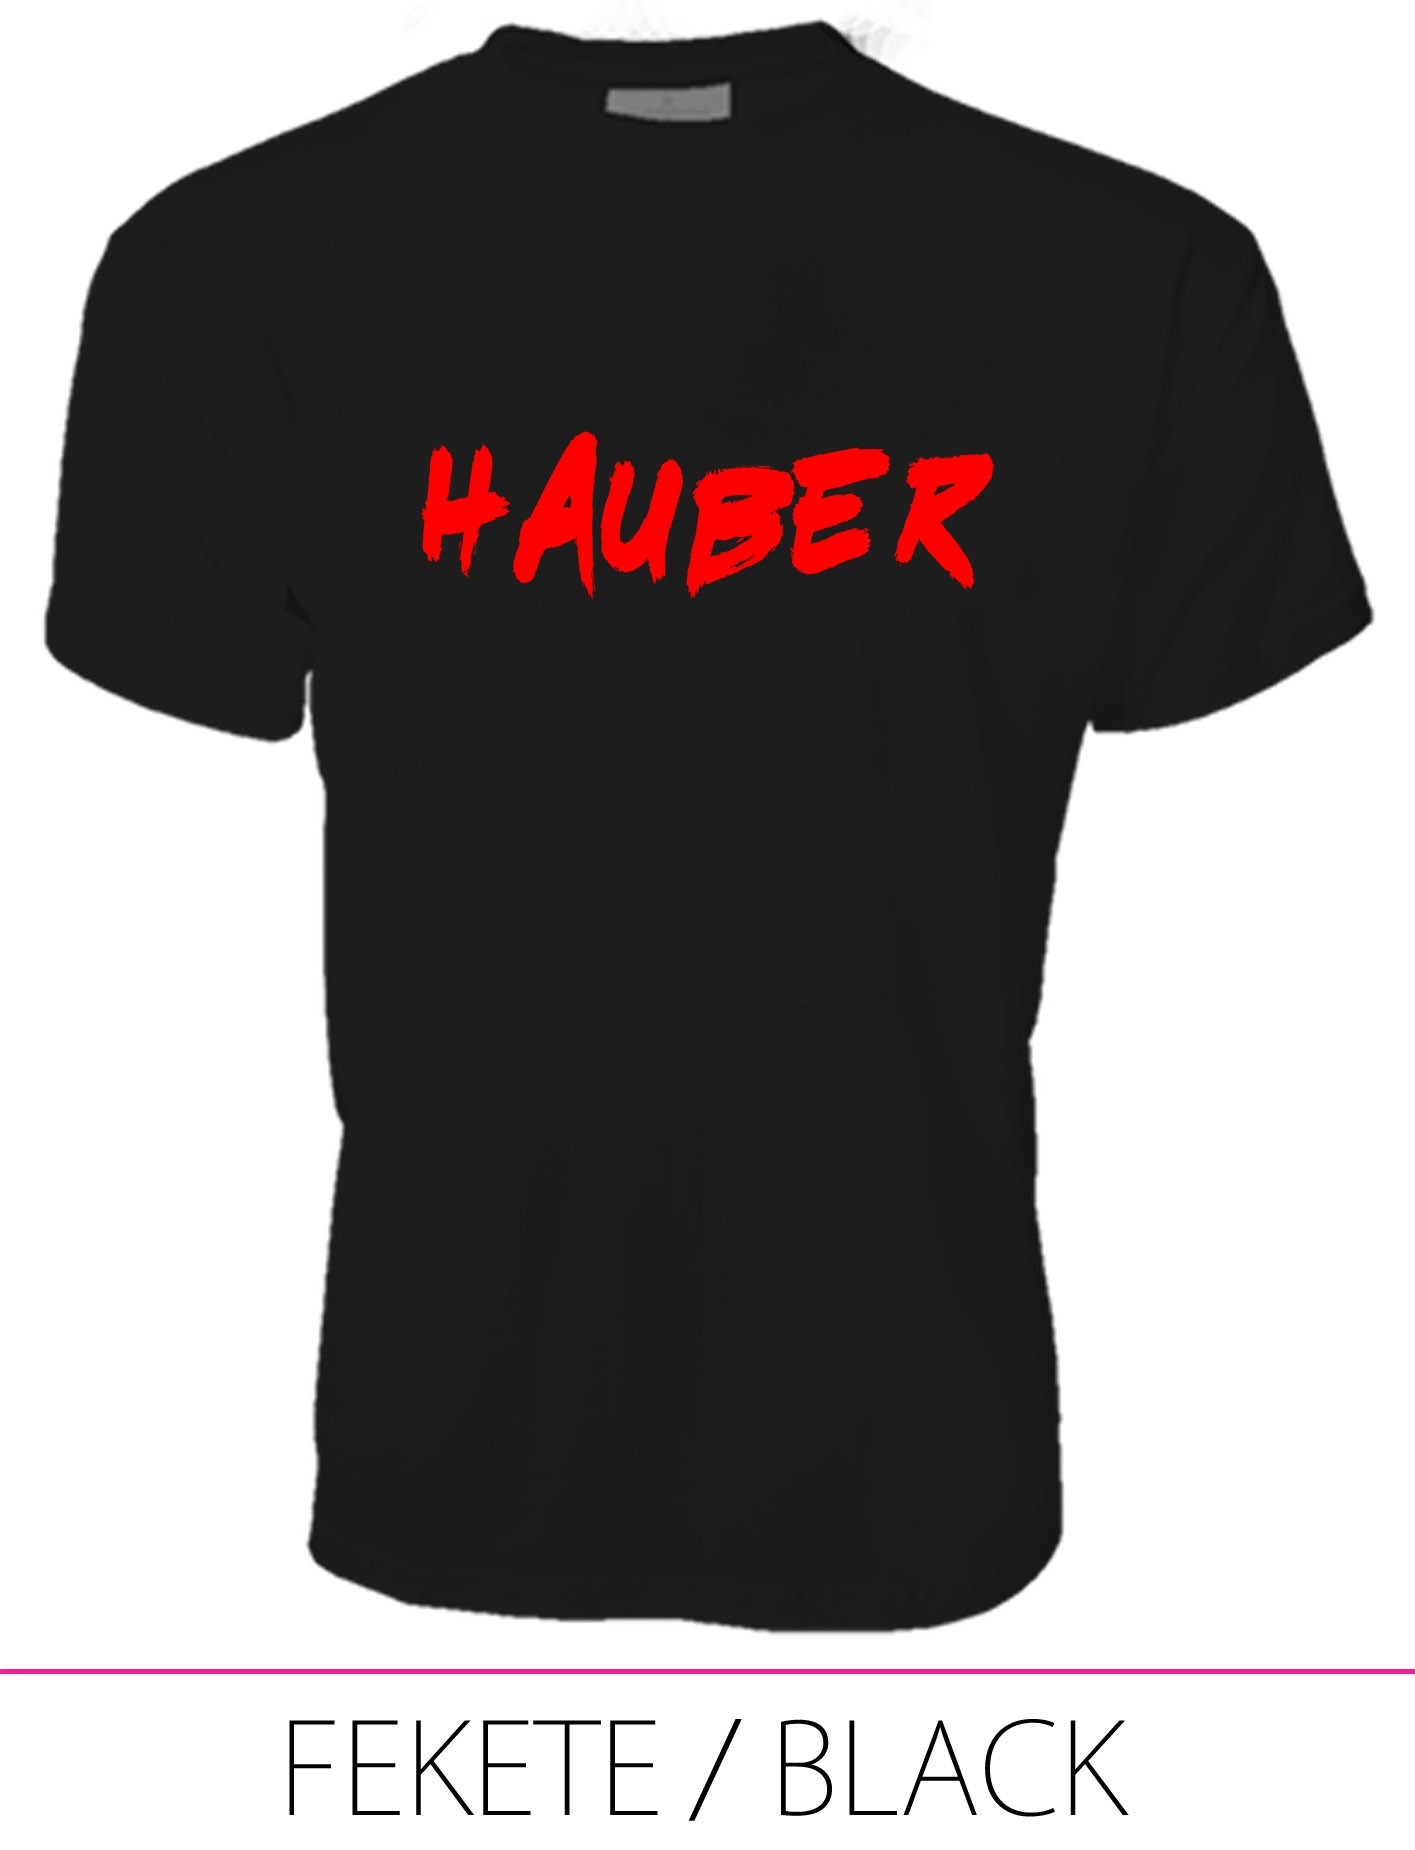 MEN PREMIUM CREW NECK T-SHIRT HAUBER BLACK